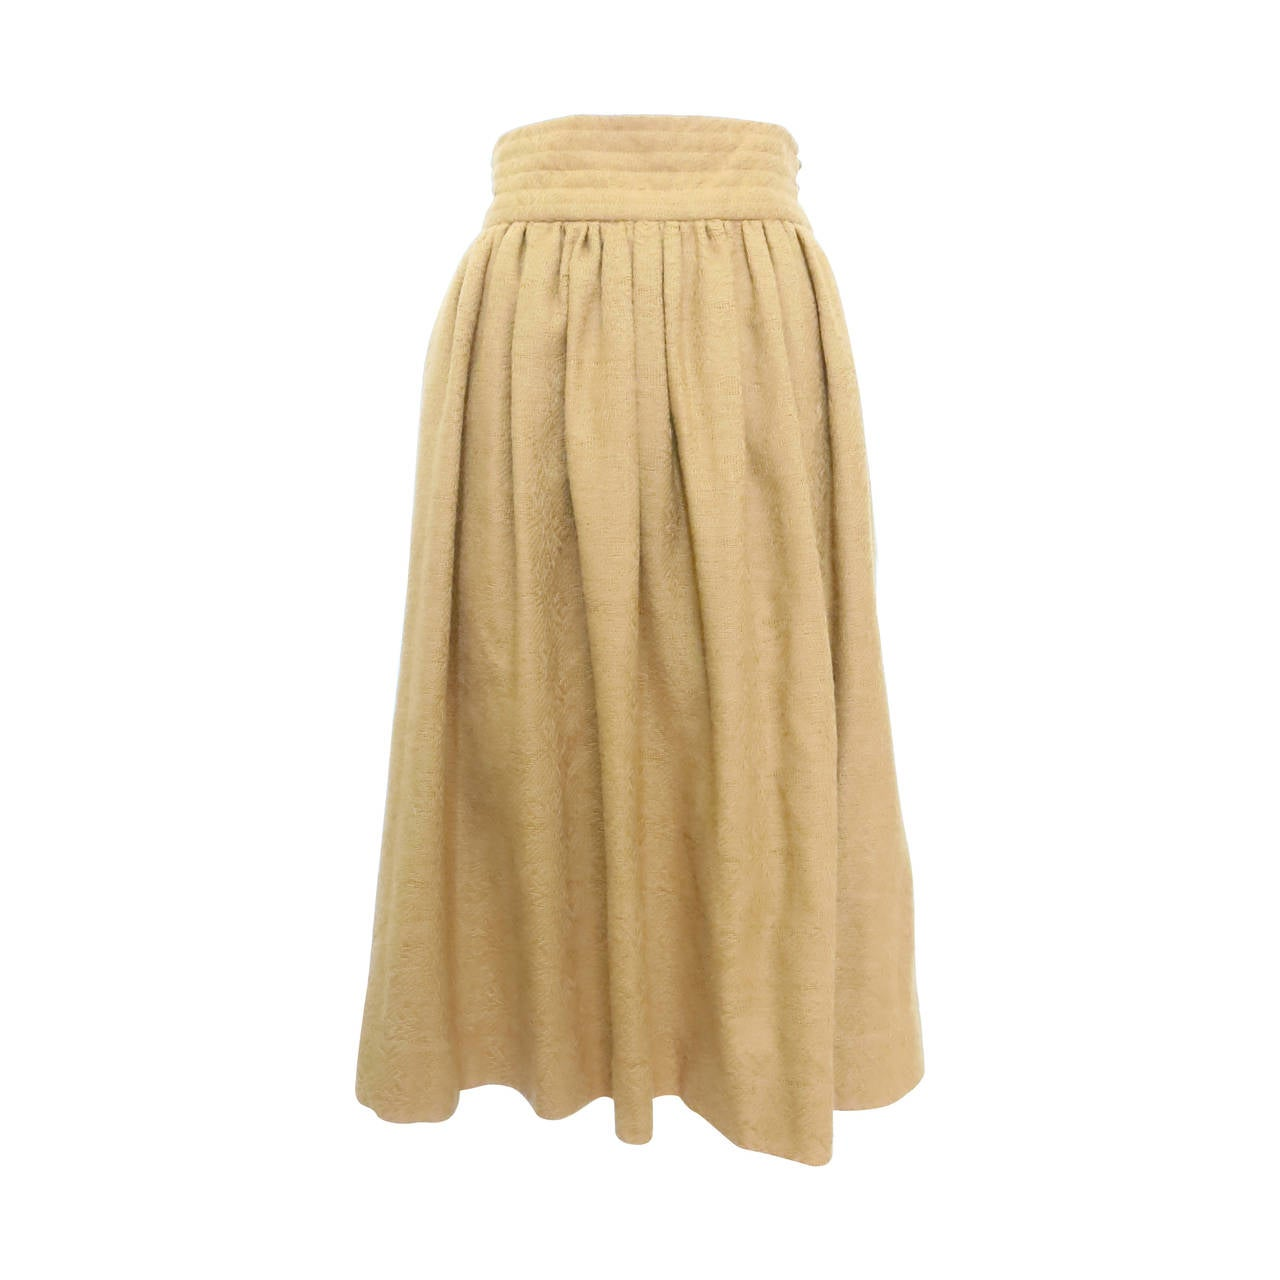 1980s Valentino Camel Maxi Skirt with Banded Waist